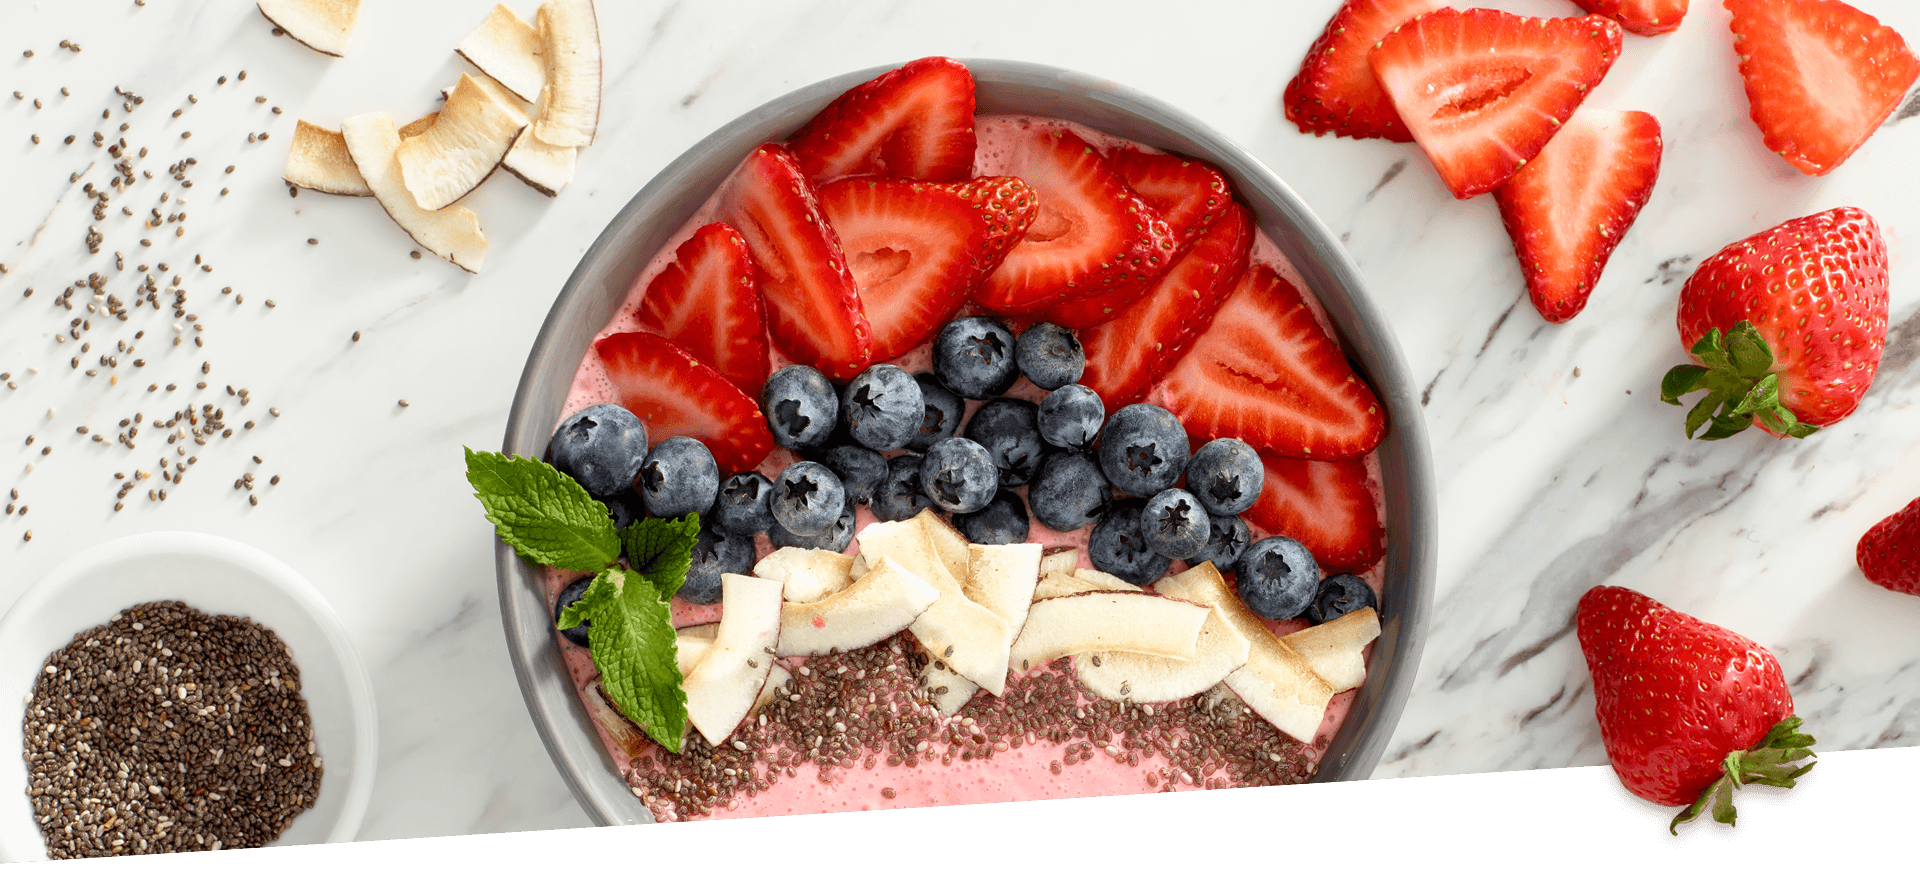 strawberry smoothie bowl new header 2